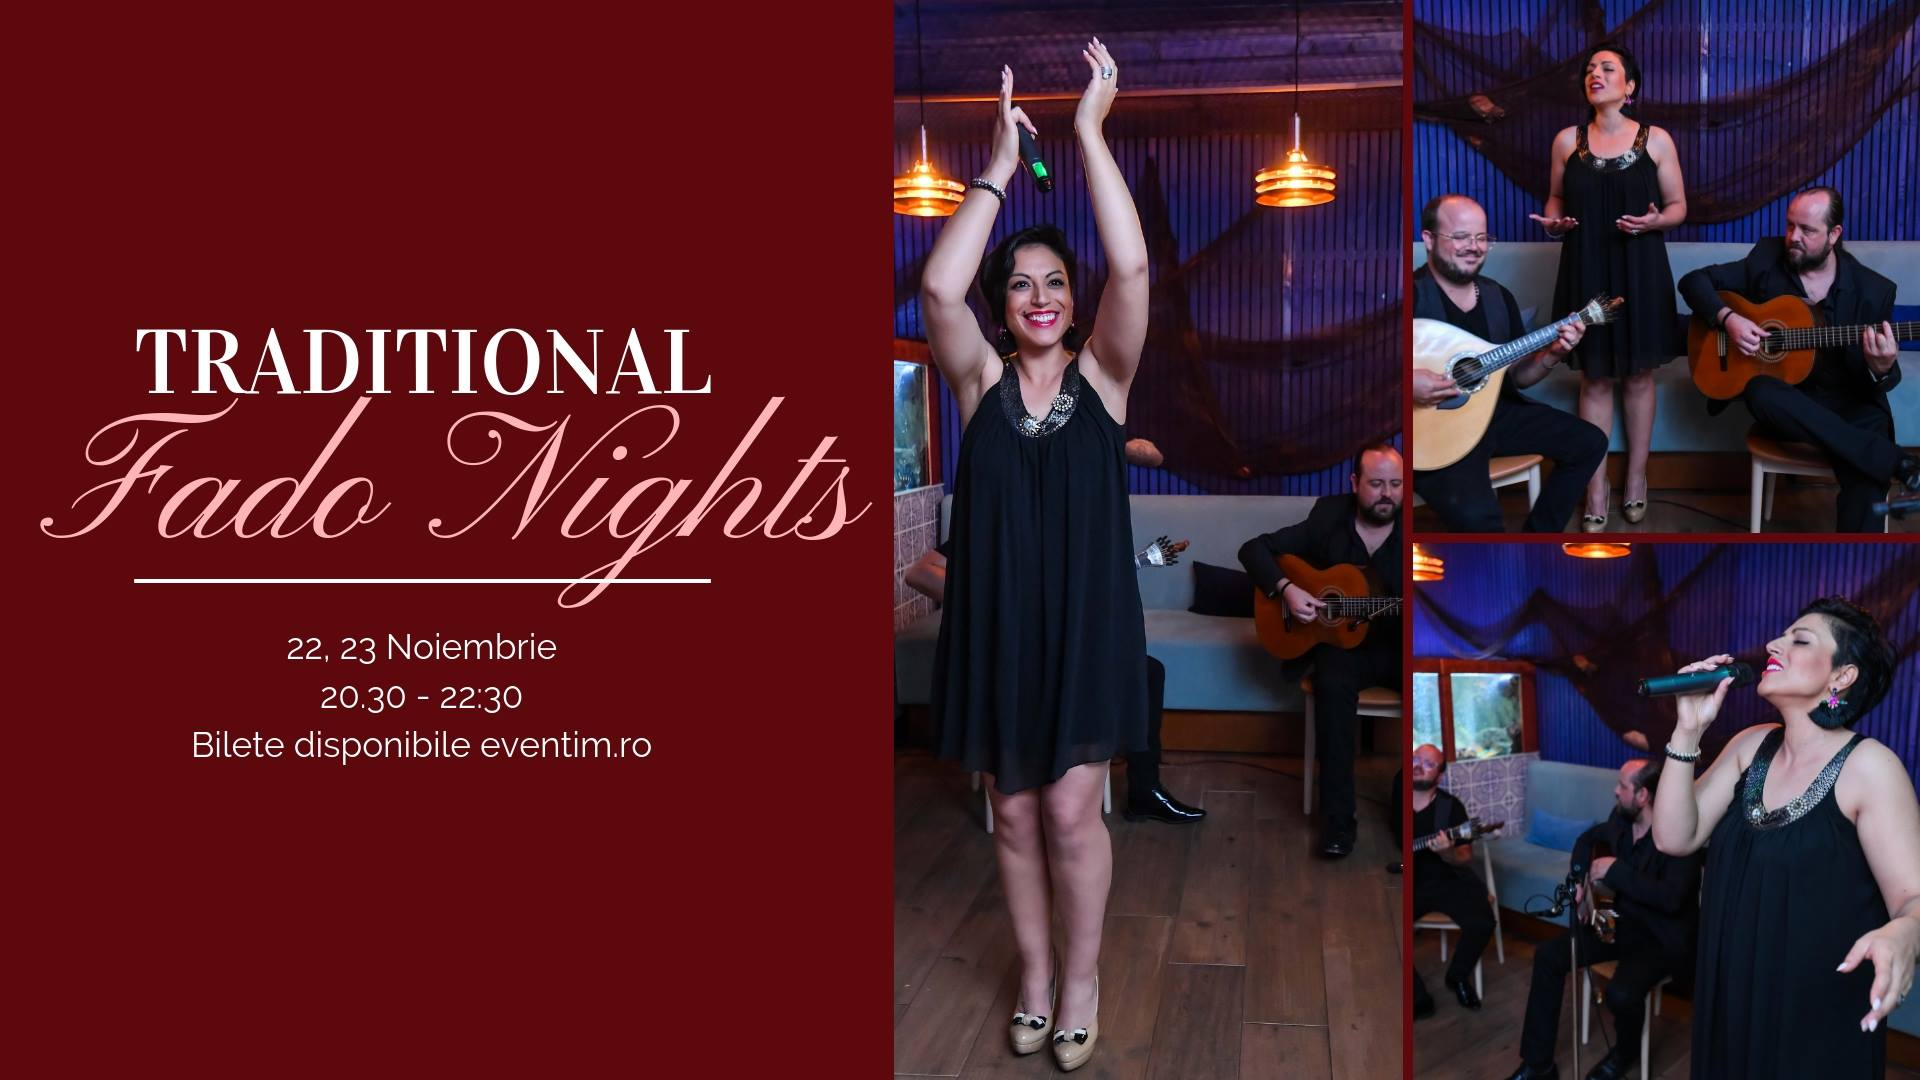 Fado Nights in Bucharest - 22, 23 noiembrie